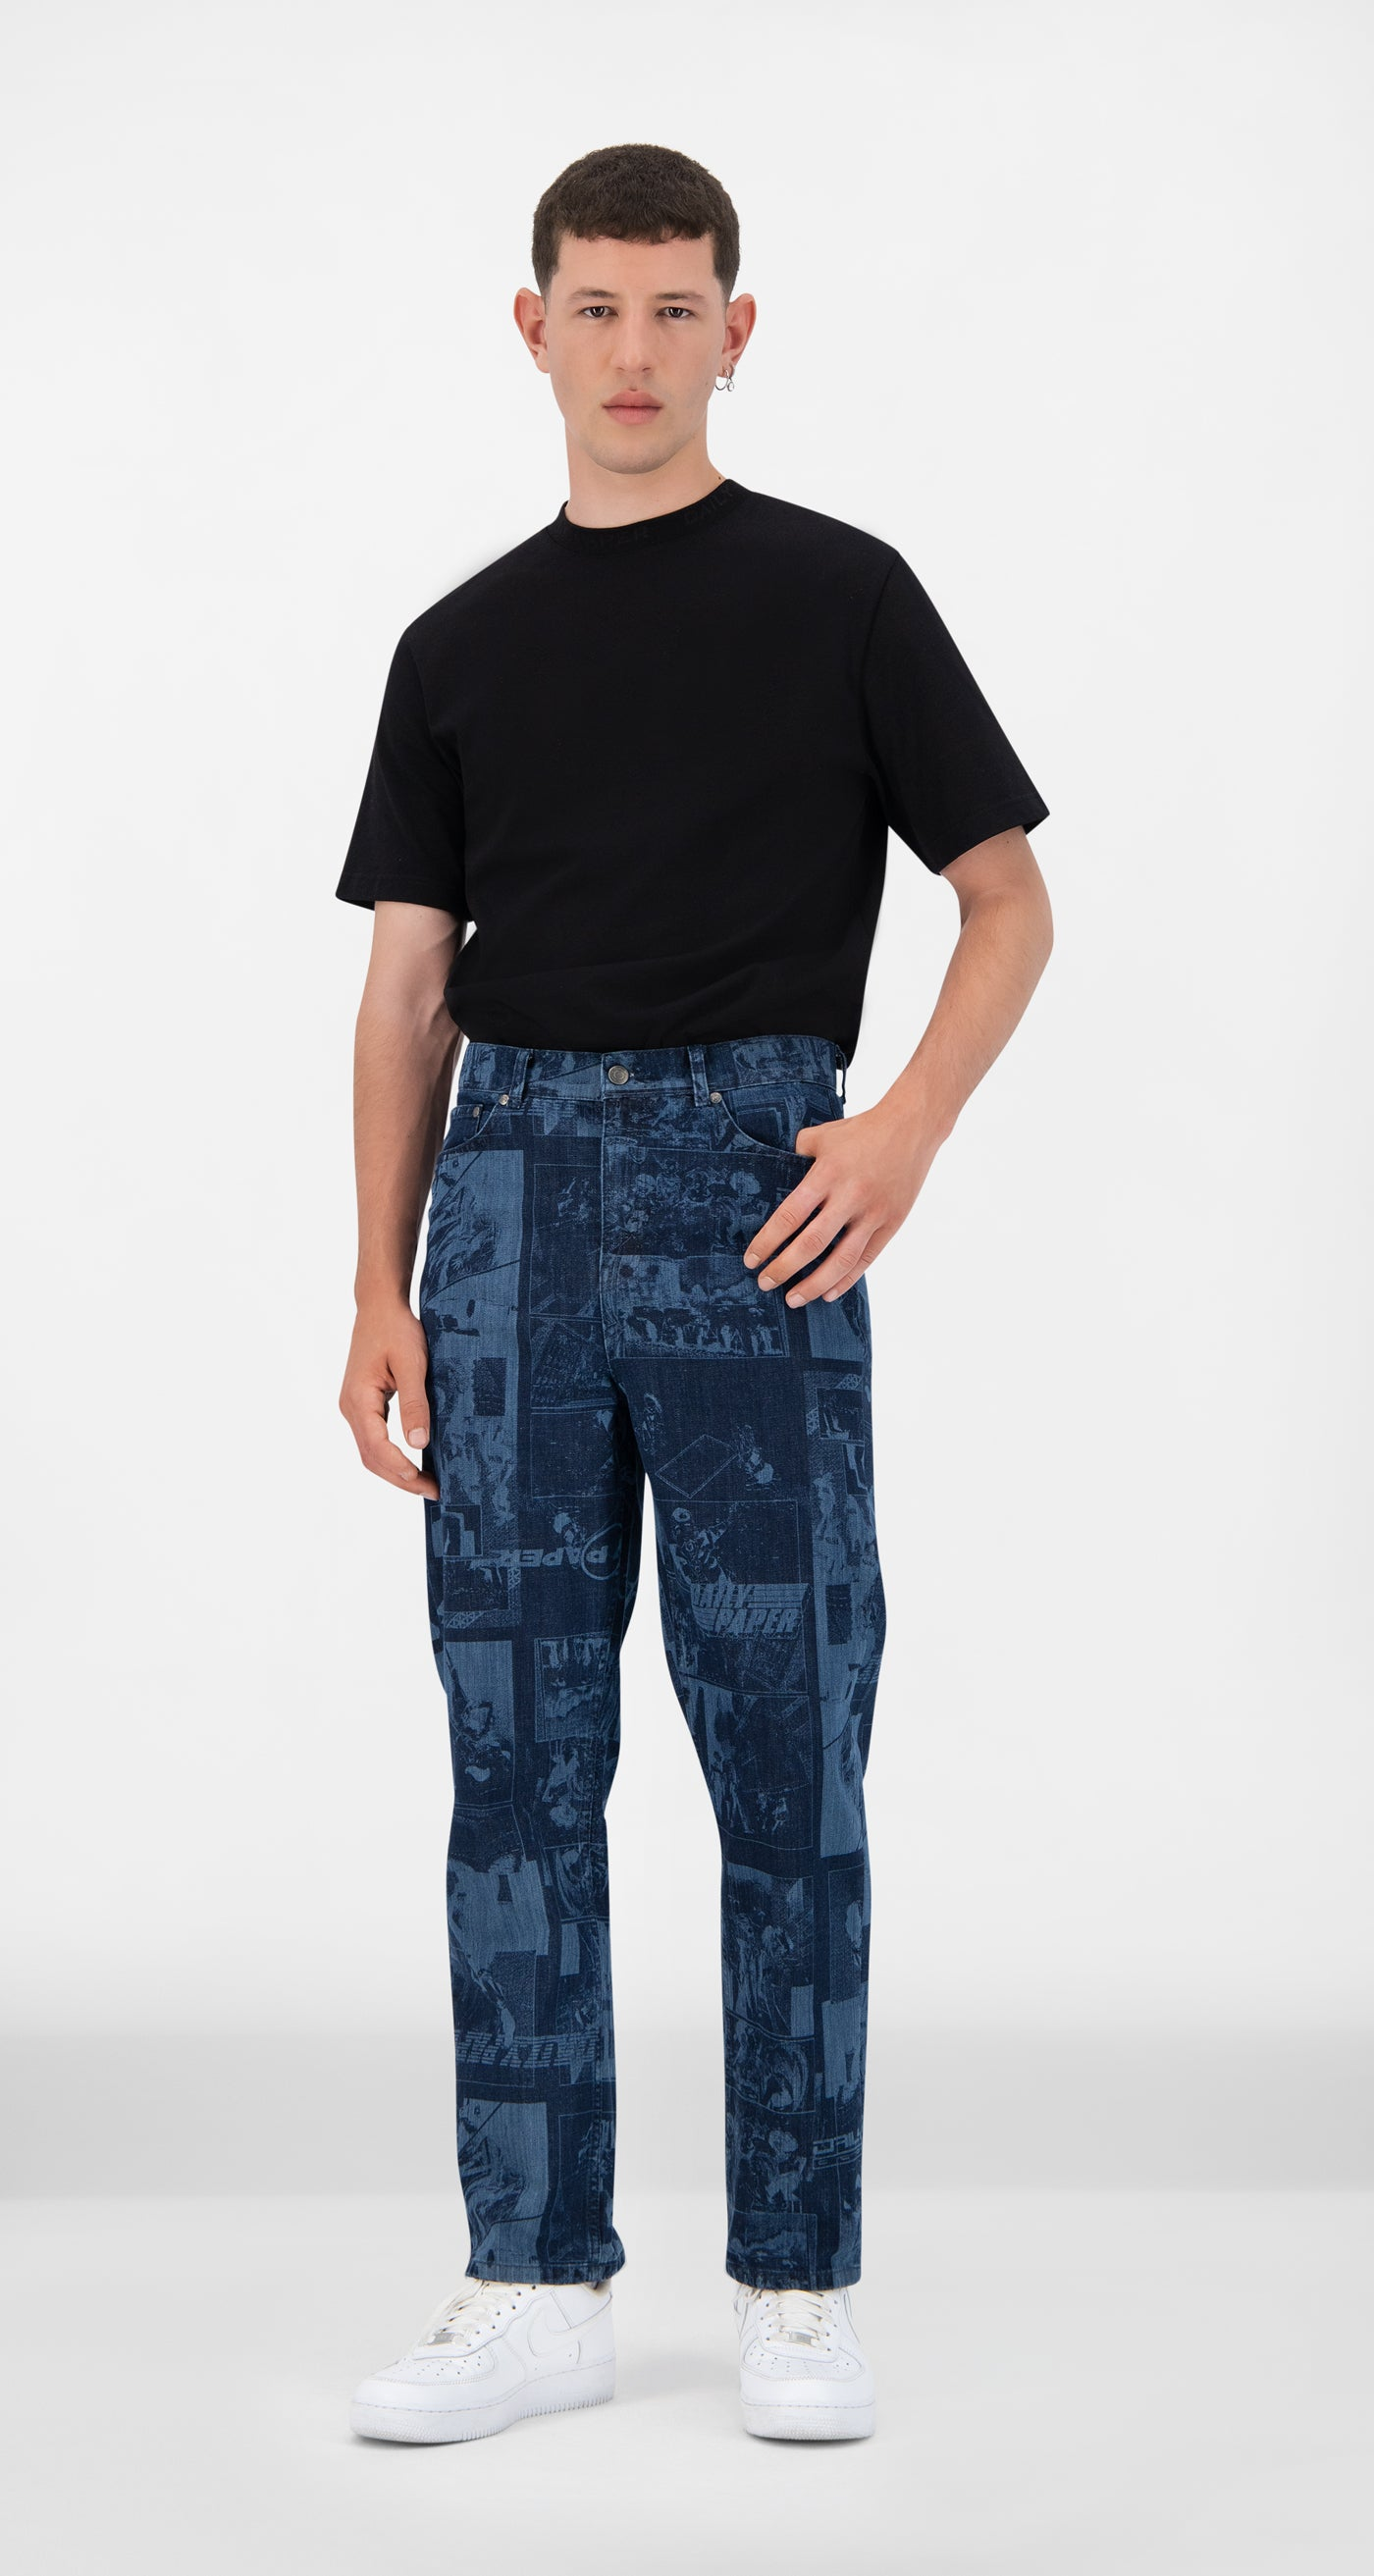 Daily Paper - Lazered Denim Jarzeb Pants - Men